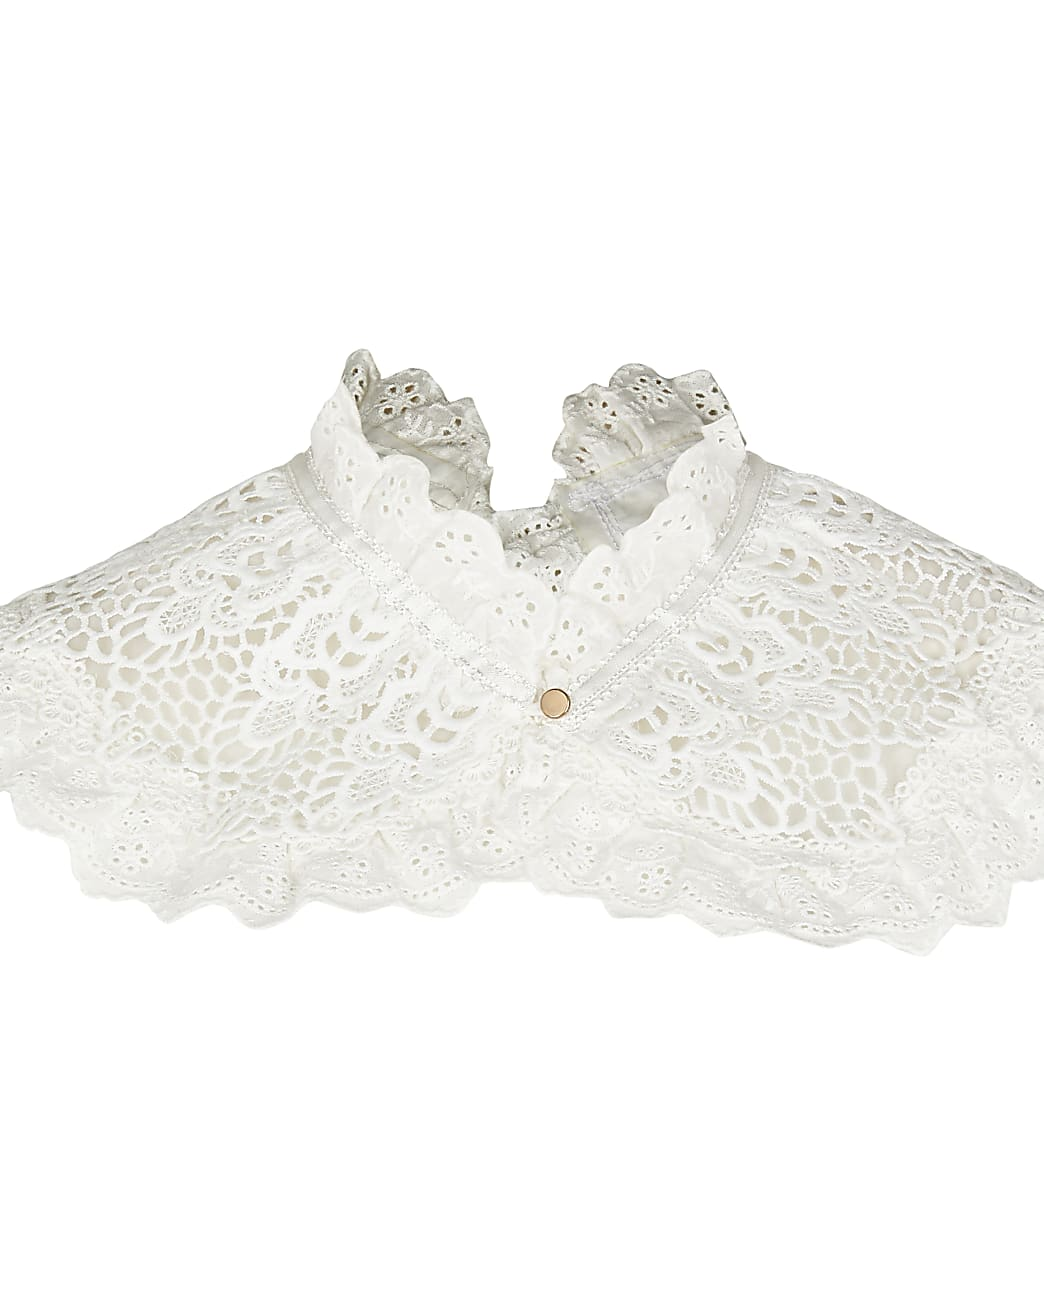 White double layer frill lace collar